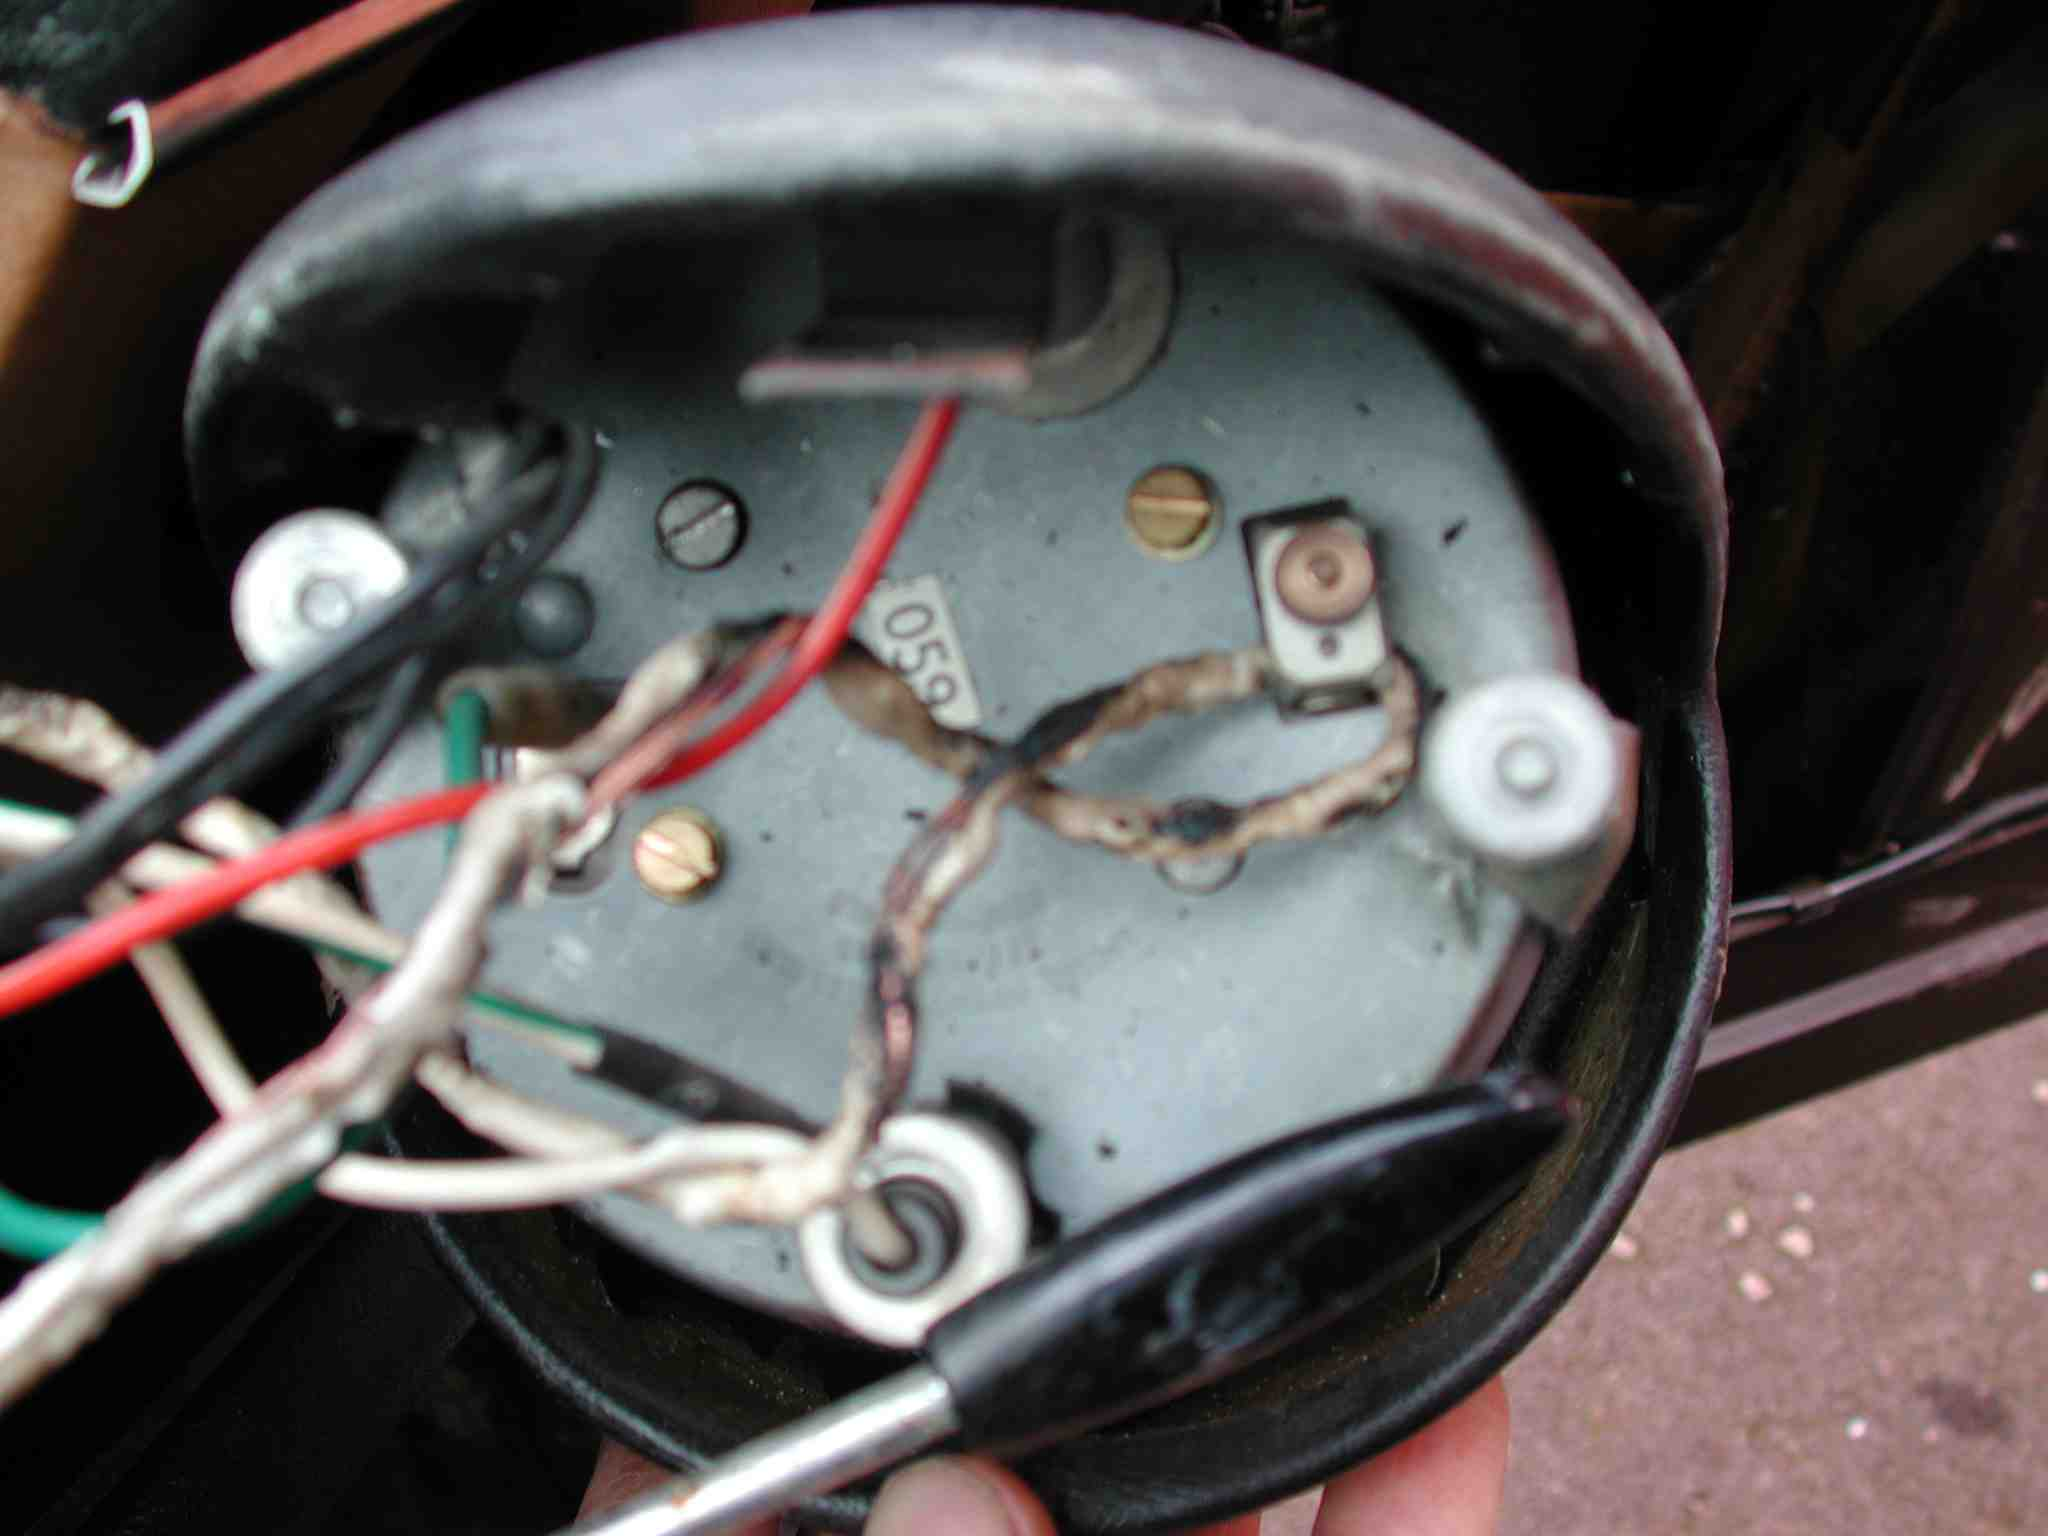 Sunbeam Tachometer Wiring Library Mercury Outboard Diagram On Sunpro Super Tach 2 Slightly More Detailed View Of Burnt Out Wire Going Through Rev Counter Sensor It Should